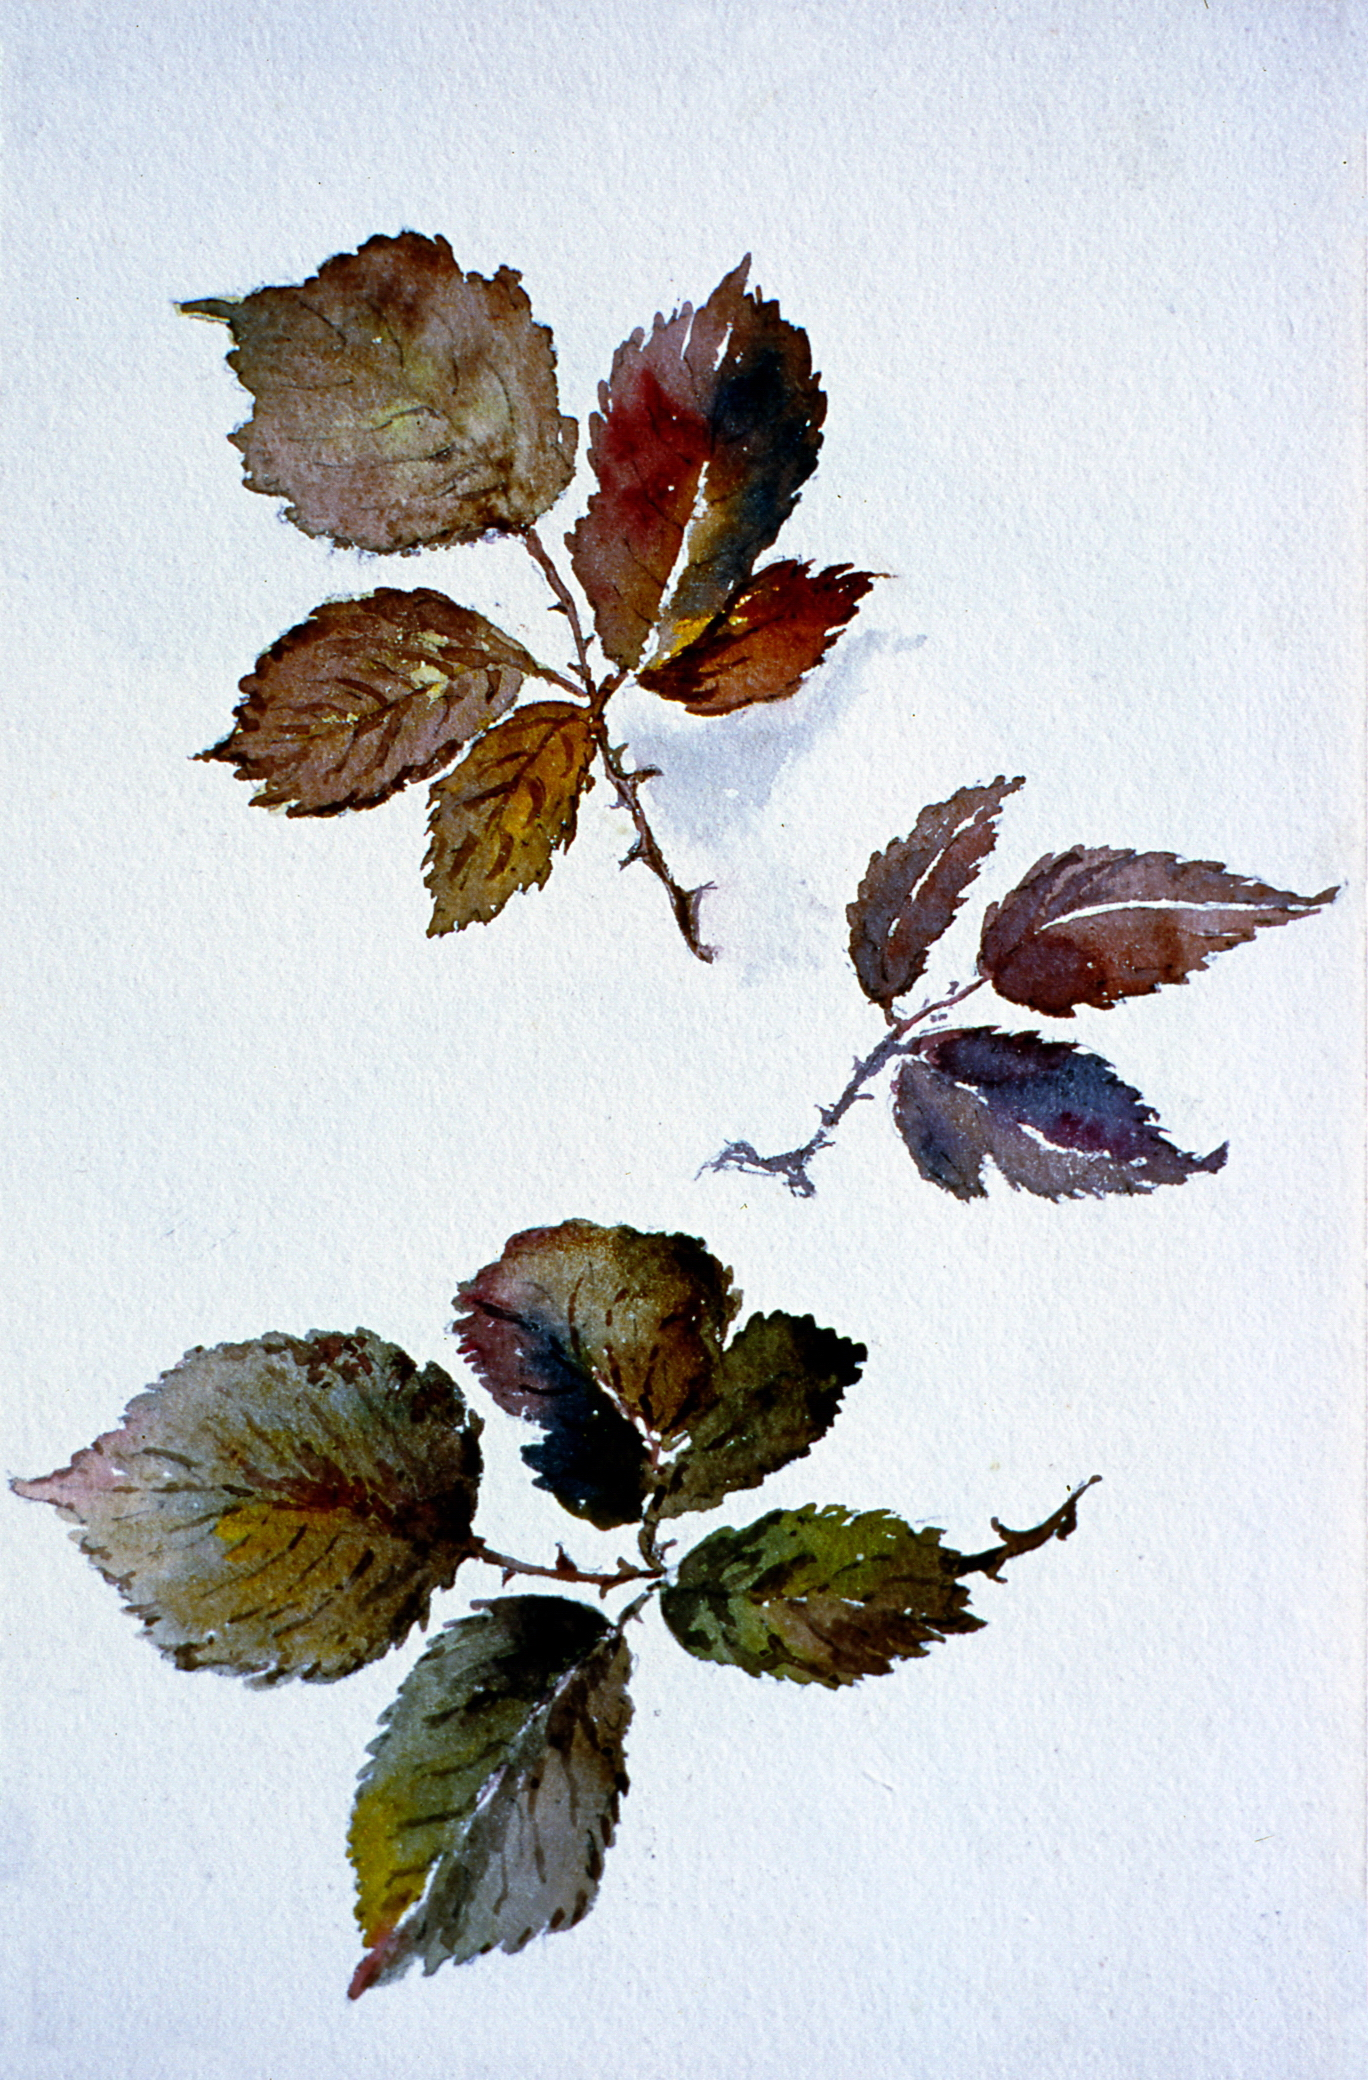 Untitled  (Botanical - Leaves in Red and Brown), n.d. Julia Bullock Webster, watercolour on paper, 23.2 cm x 15 cm, 2003.02.10, gift of The Grist Mill at Keremeos